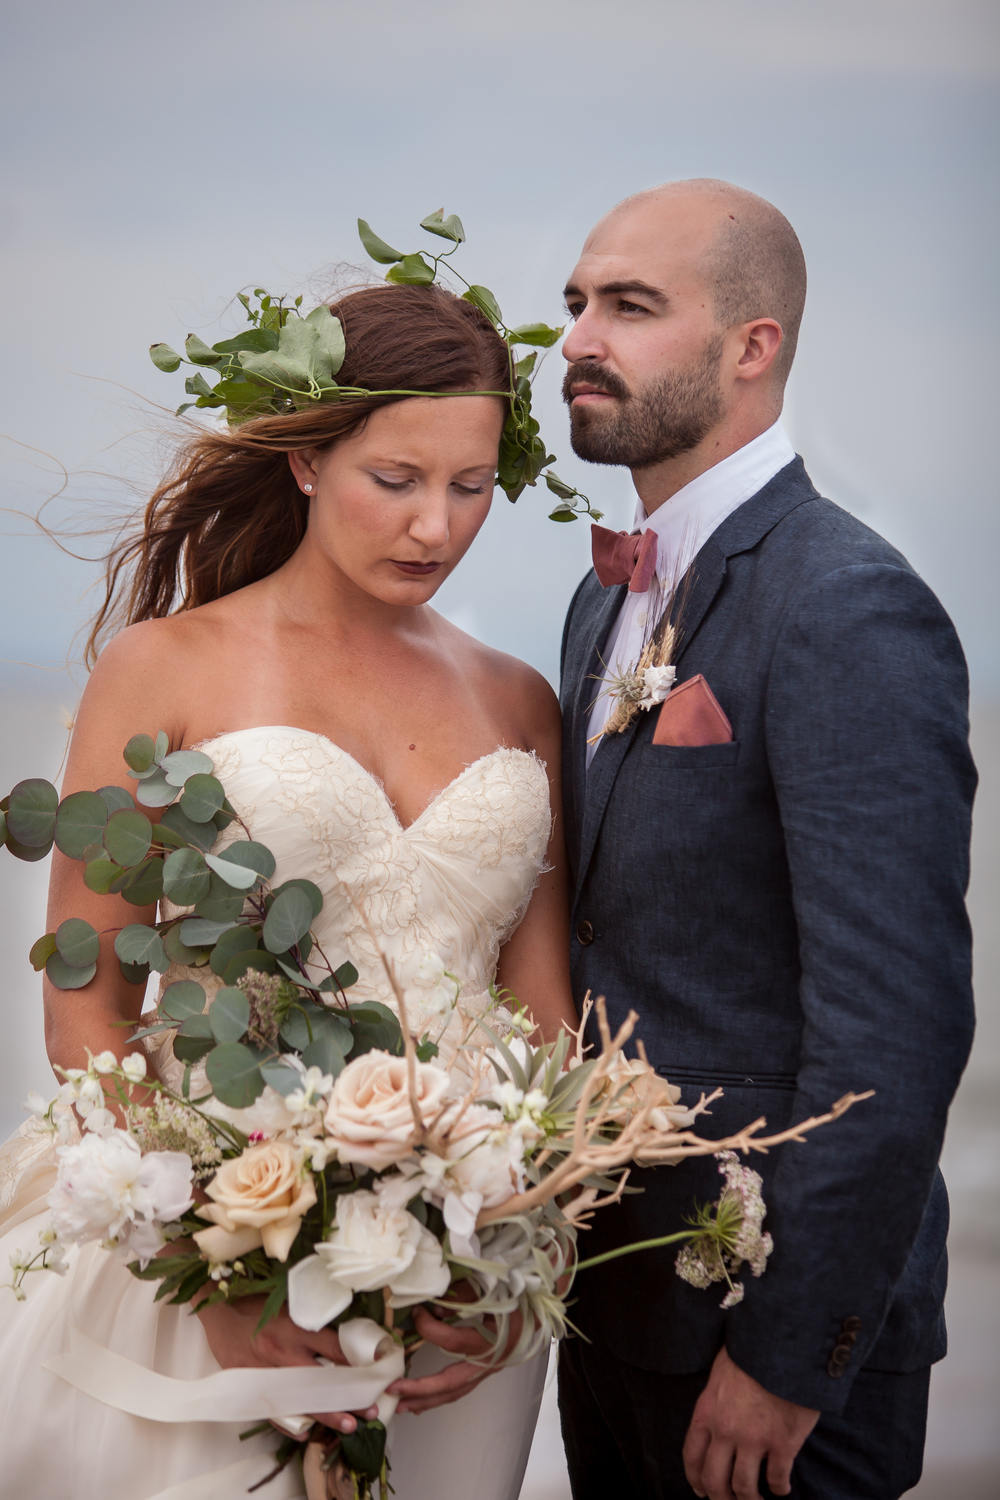 obscura-photoworks-savannah-wedding-photographer-urban-poppy-savannah-florist-sarah-seven-cascade-sarah-seven-wedding-dresses-ivory-and-beau-bridal-boutique-savannah-wedding-dresses-savannah-bridal-boutique-savannah-boho-bride-tybee-beach-wedding-5.png